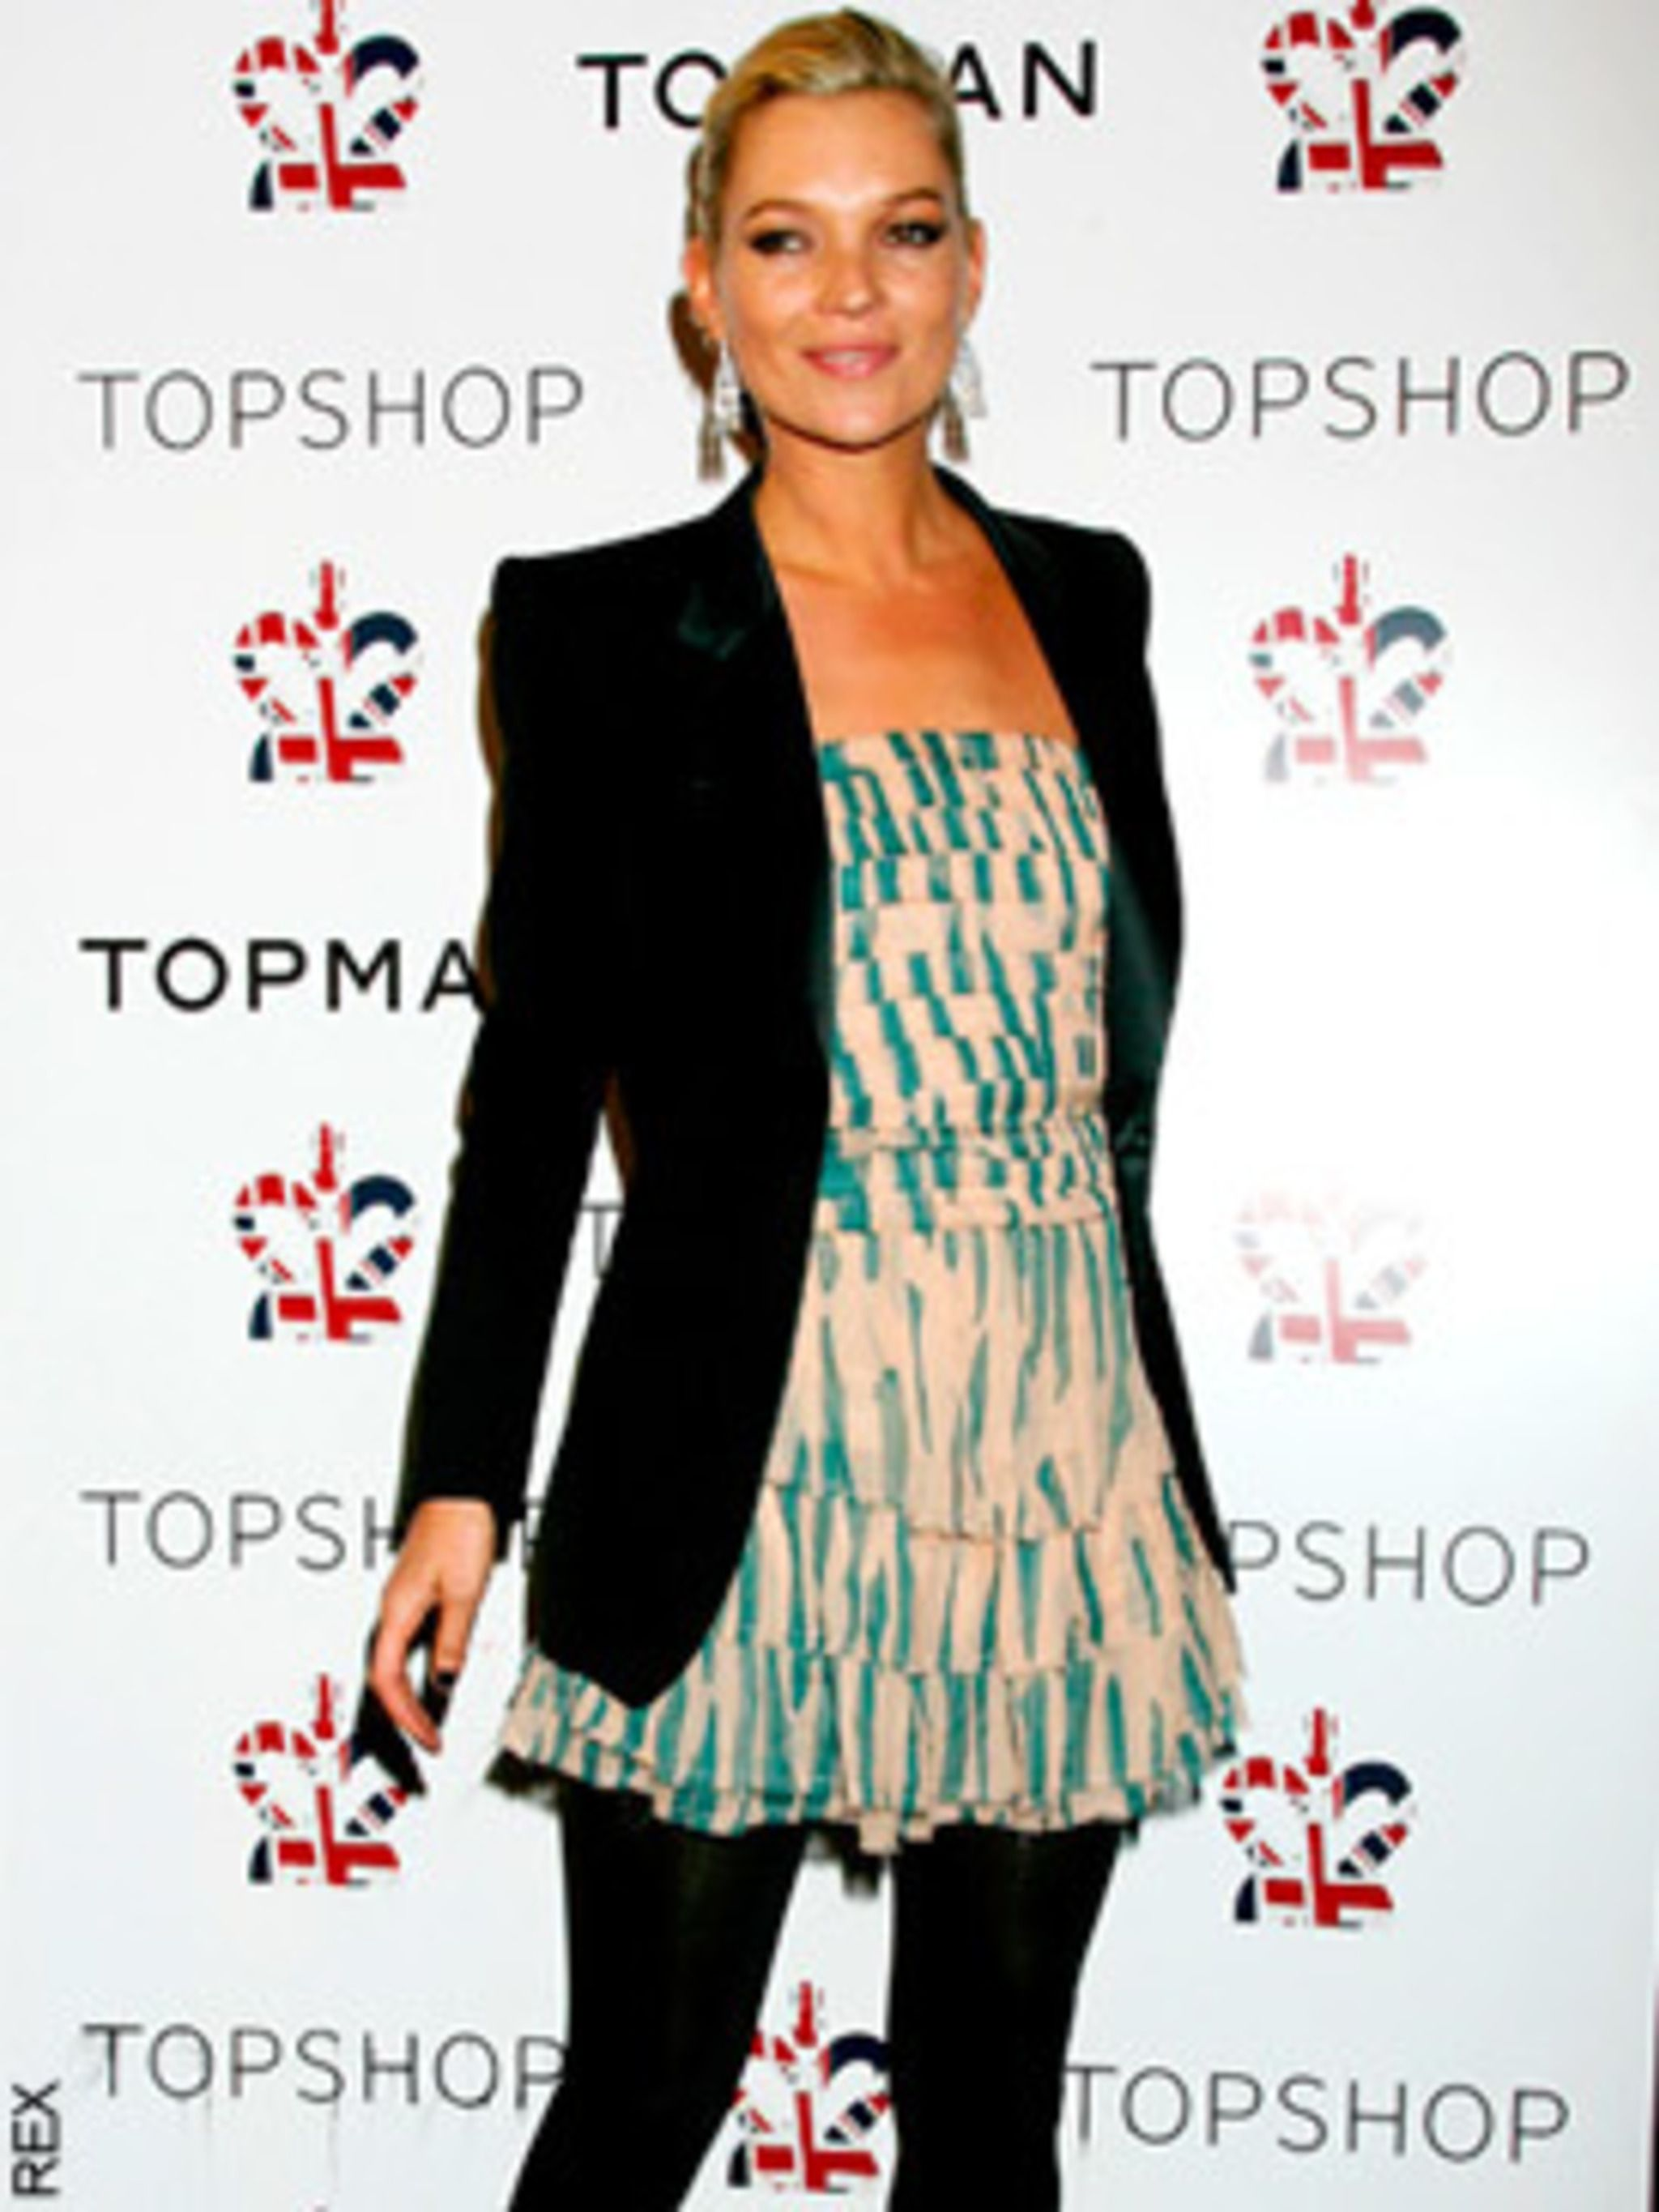 8af57f16b Kate Moss arrives in New York for Topshop opening